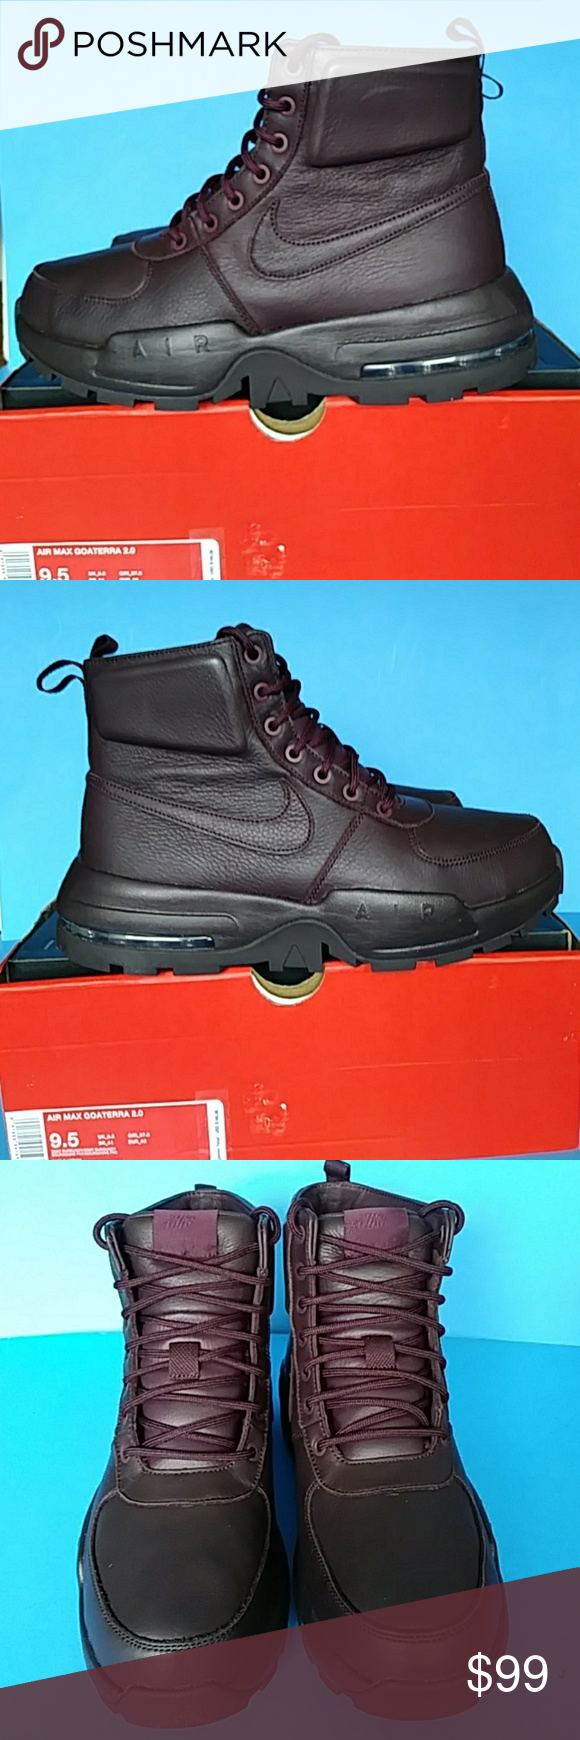 b9bb97dba2 BRAND NEW NIKE LEATHER AIR MAX BOOTS 100 % AUTHENTIC NIKE AIR NAX GOATERRA  2.0 UNISEX